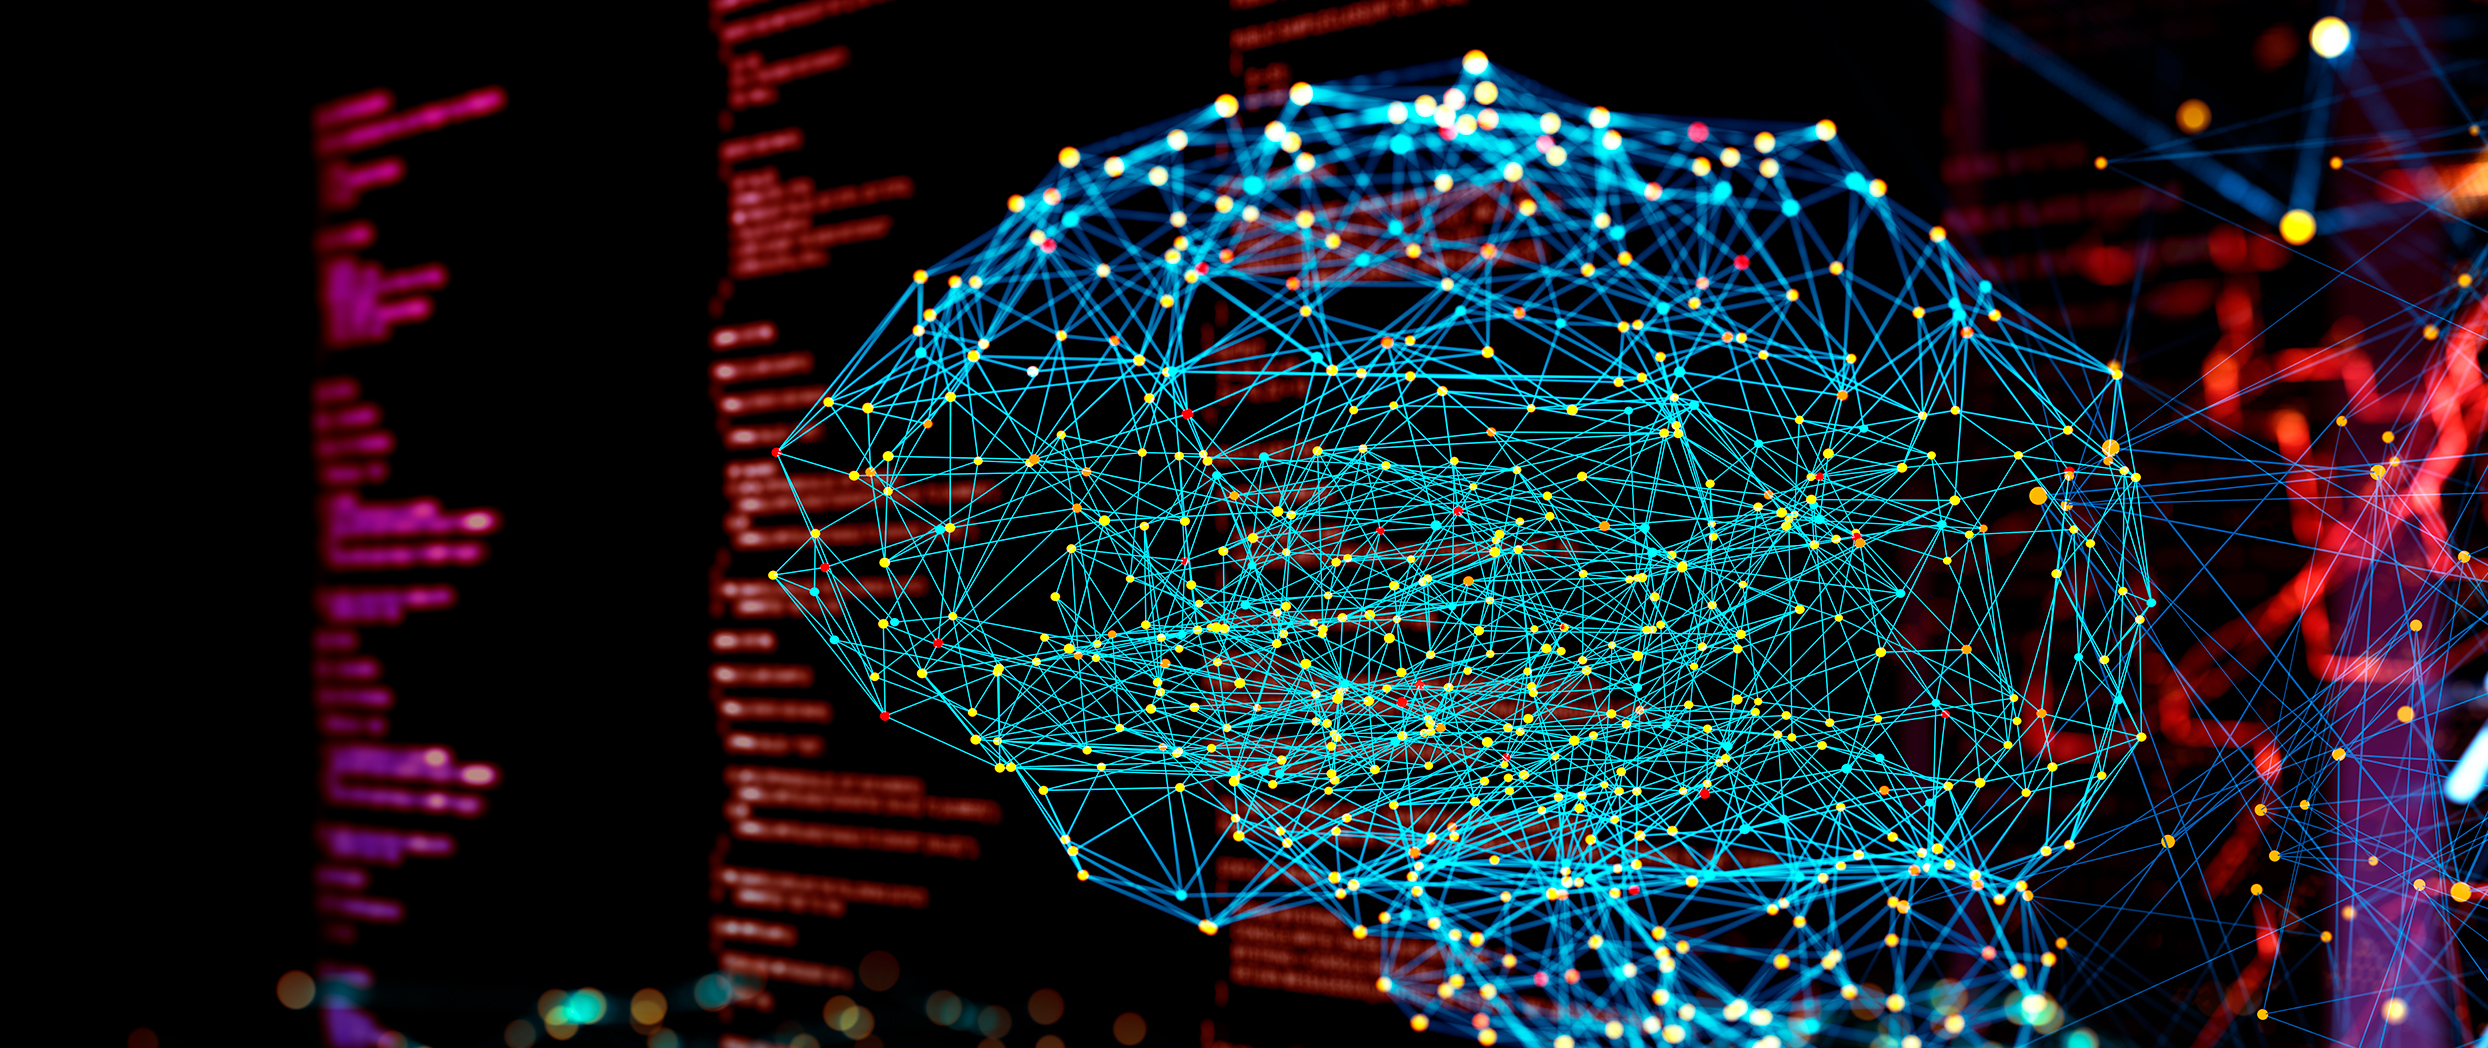 AI threats and applications among top cyber security trends high-lighted by Global Data